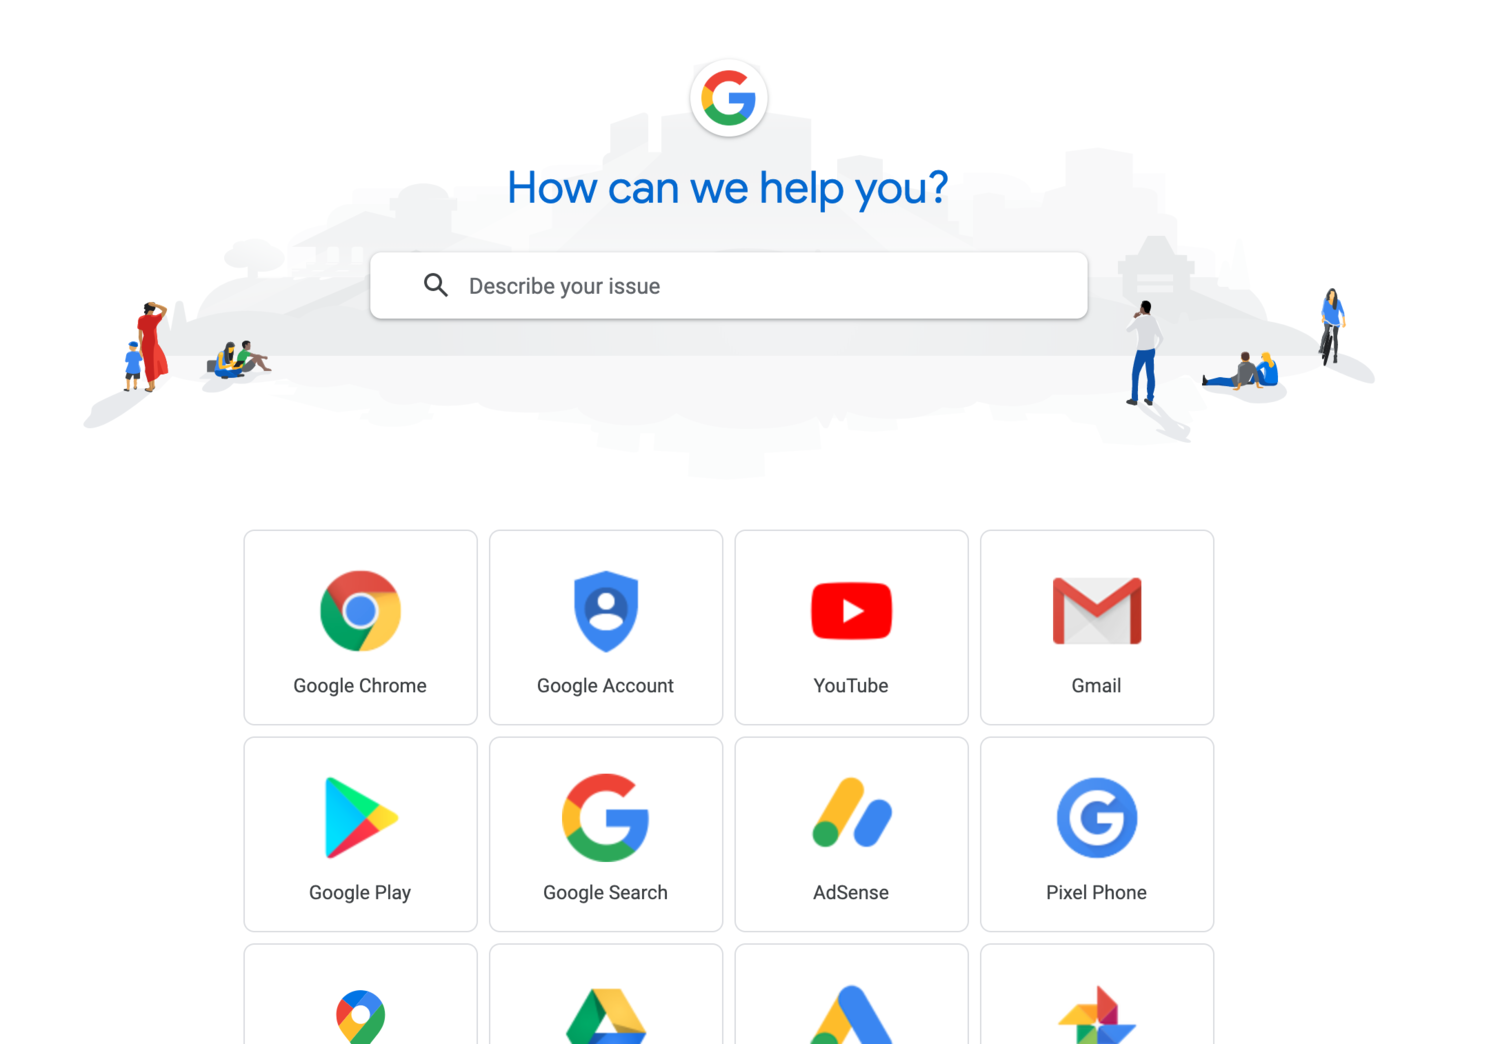 Google help center self-service